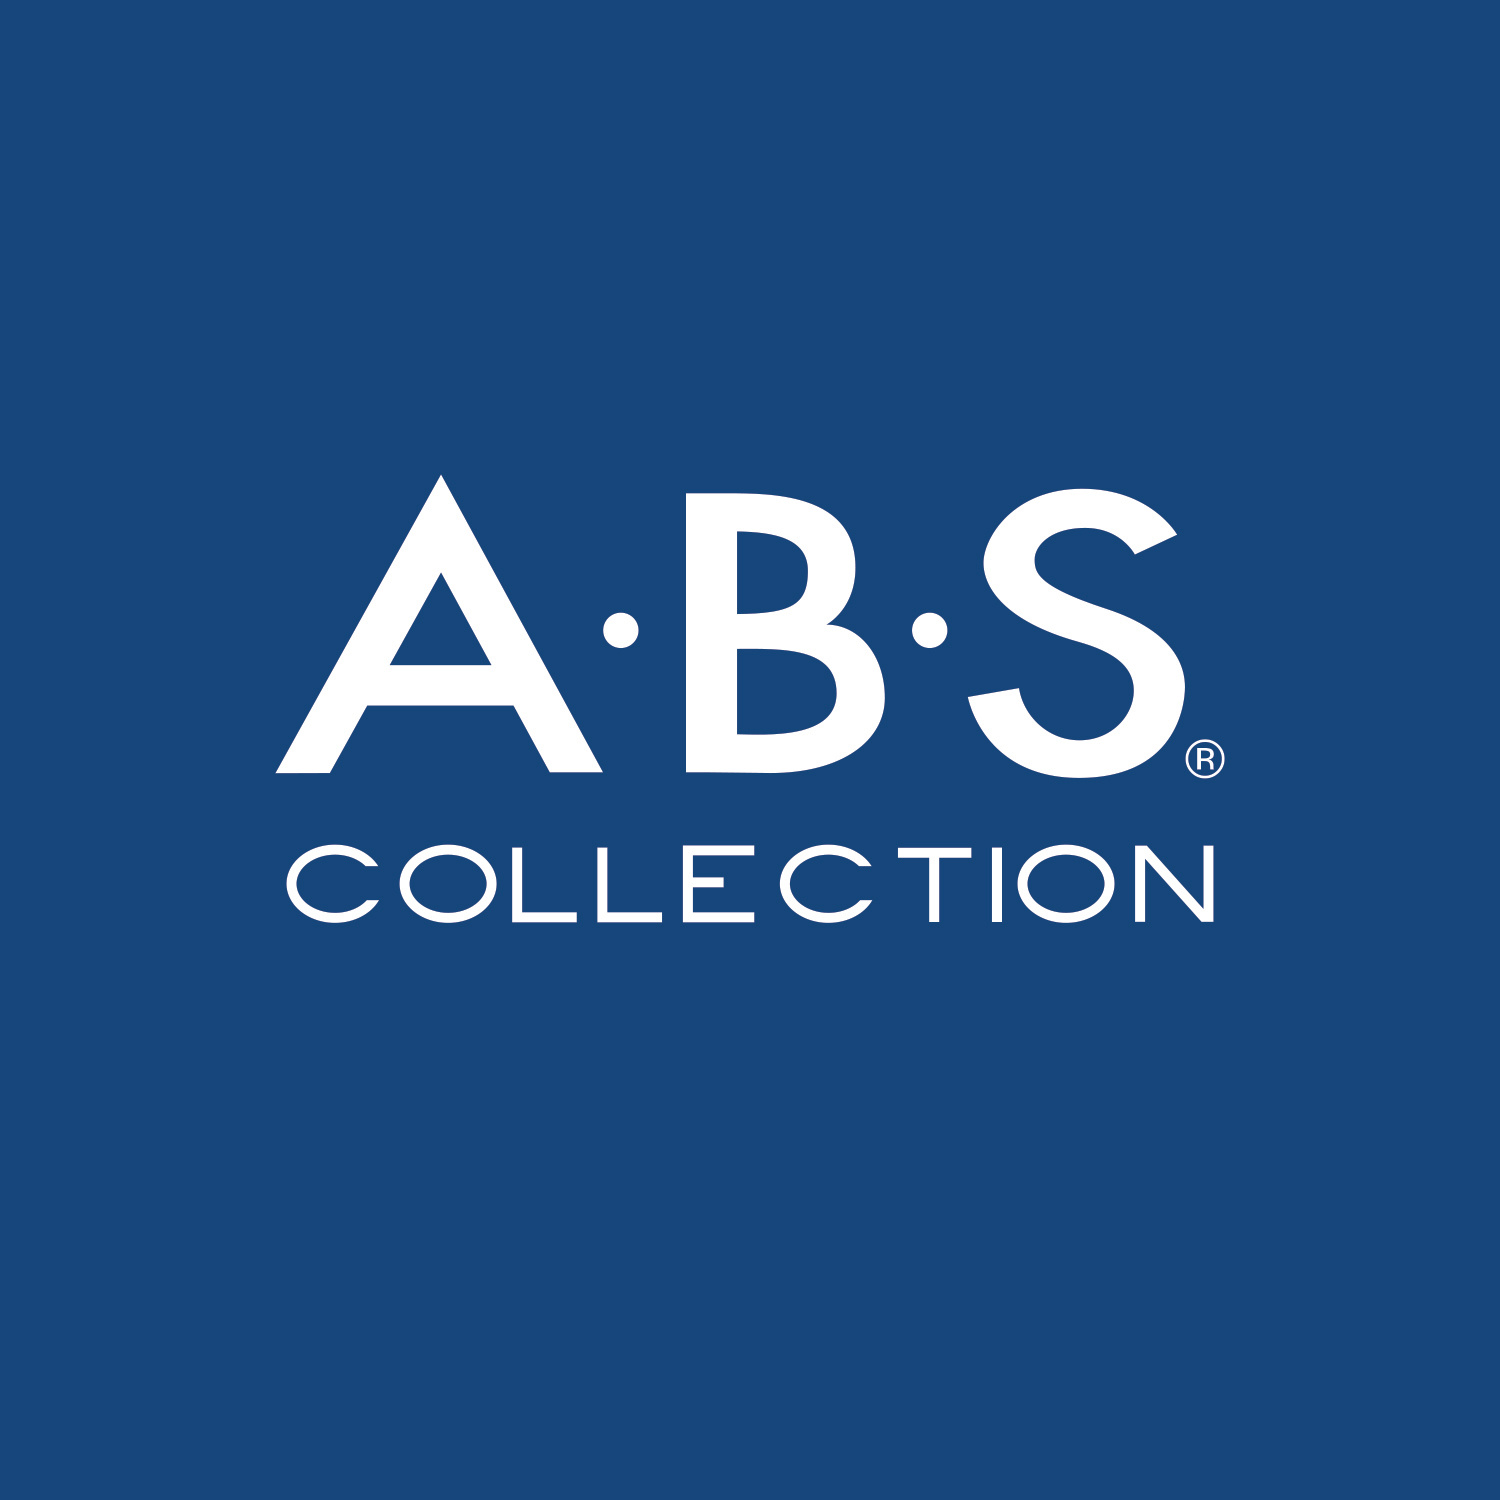 ABS LOGO - BLOCK